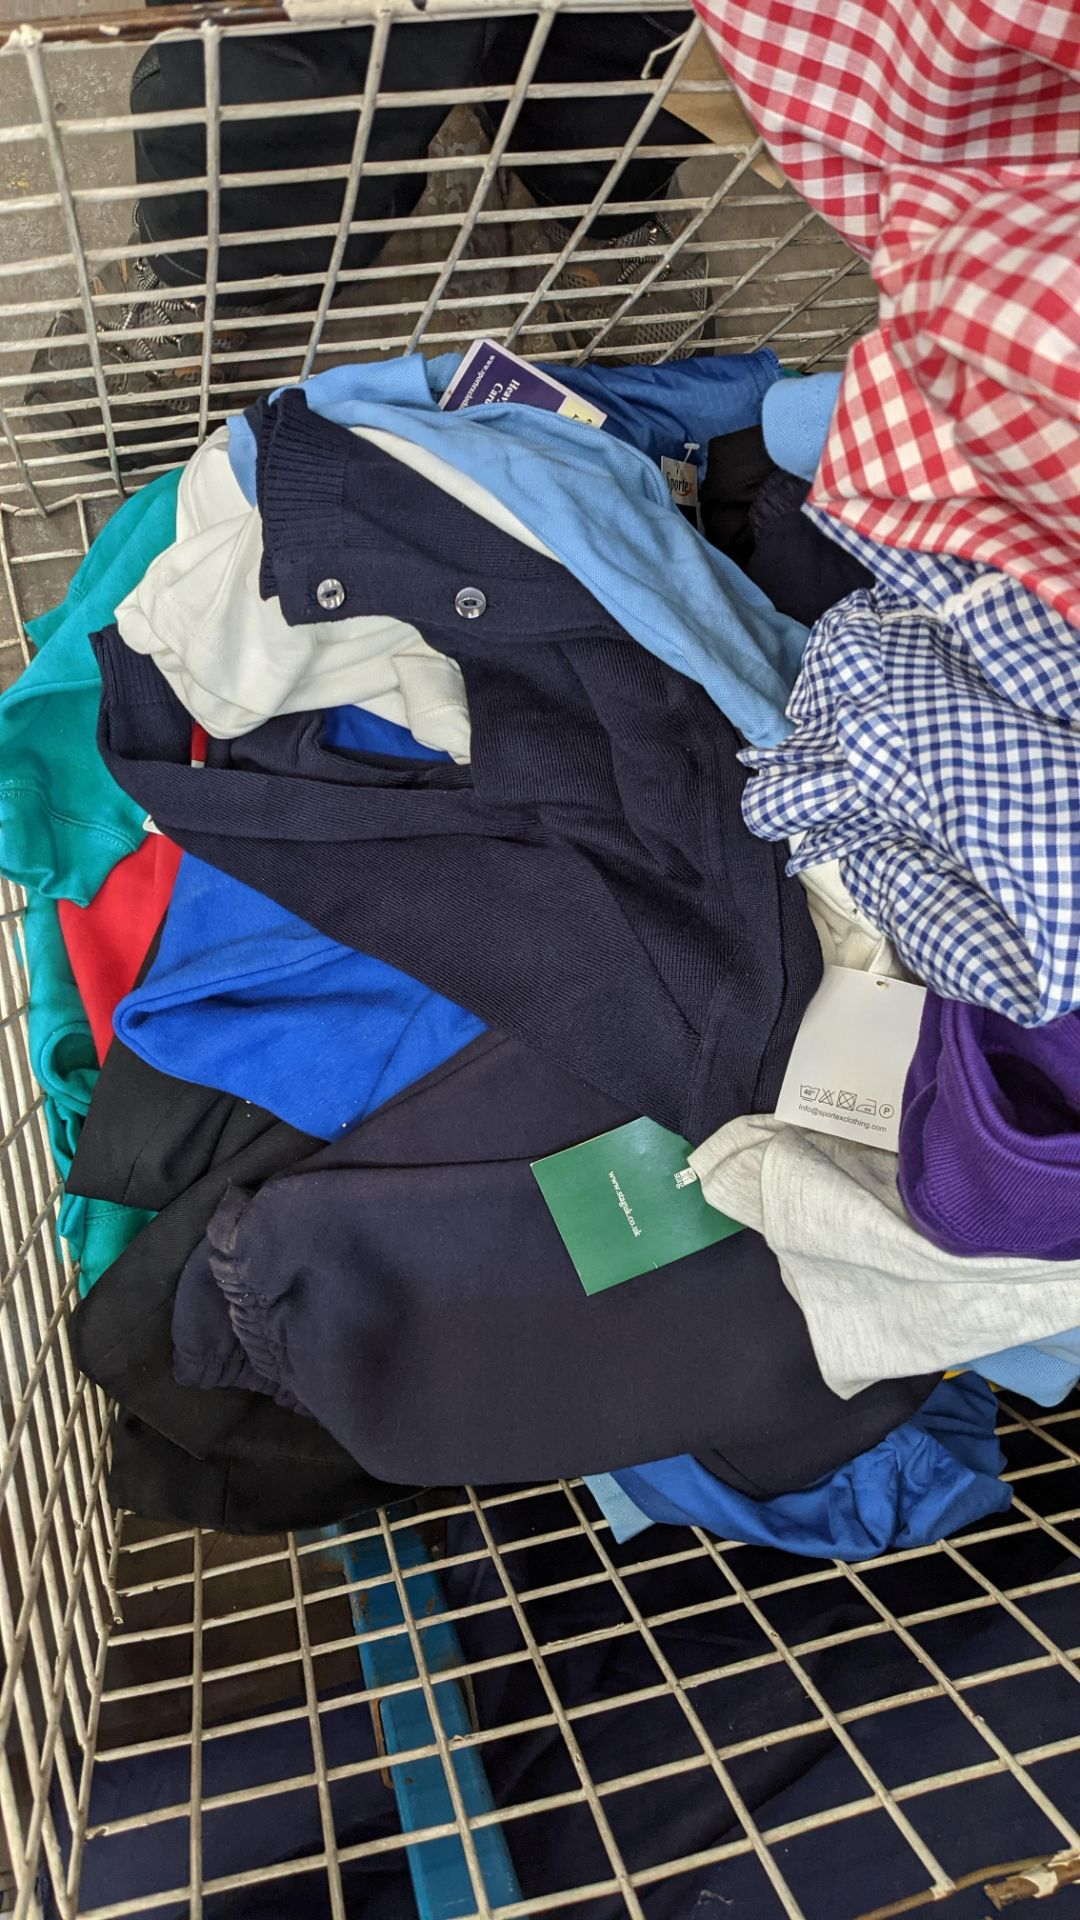 The contents of a cage of children's clothing, sweatshirts, t-shirts & more - Image 5 of 7